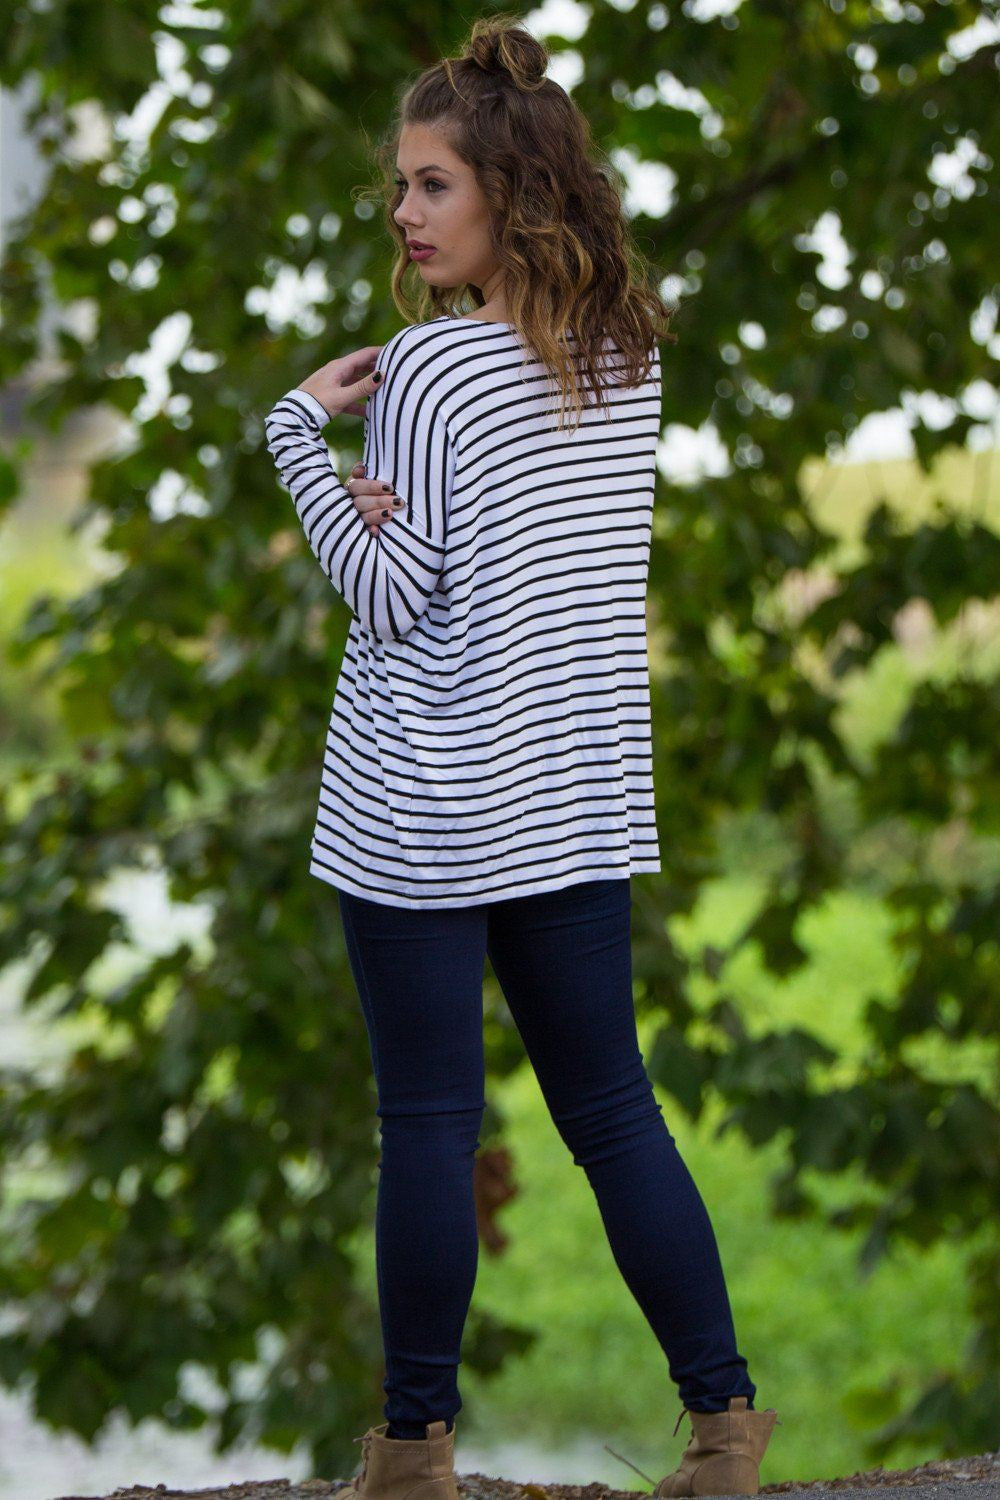 Long Sleeve Tiny Stripe Piko Top - White/Black - Piko Clothing